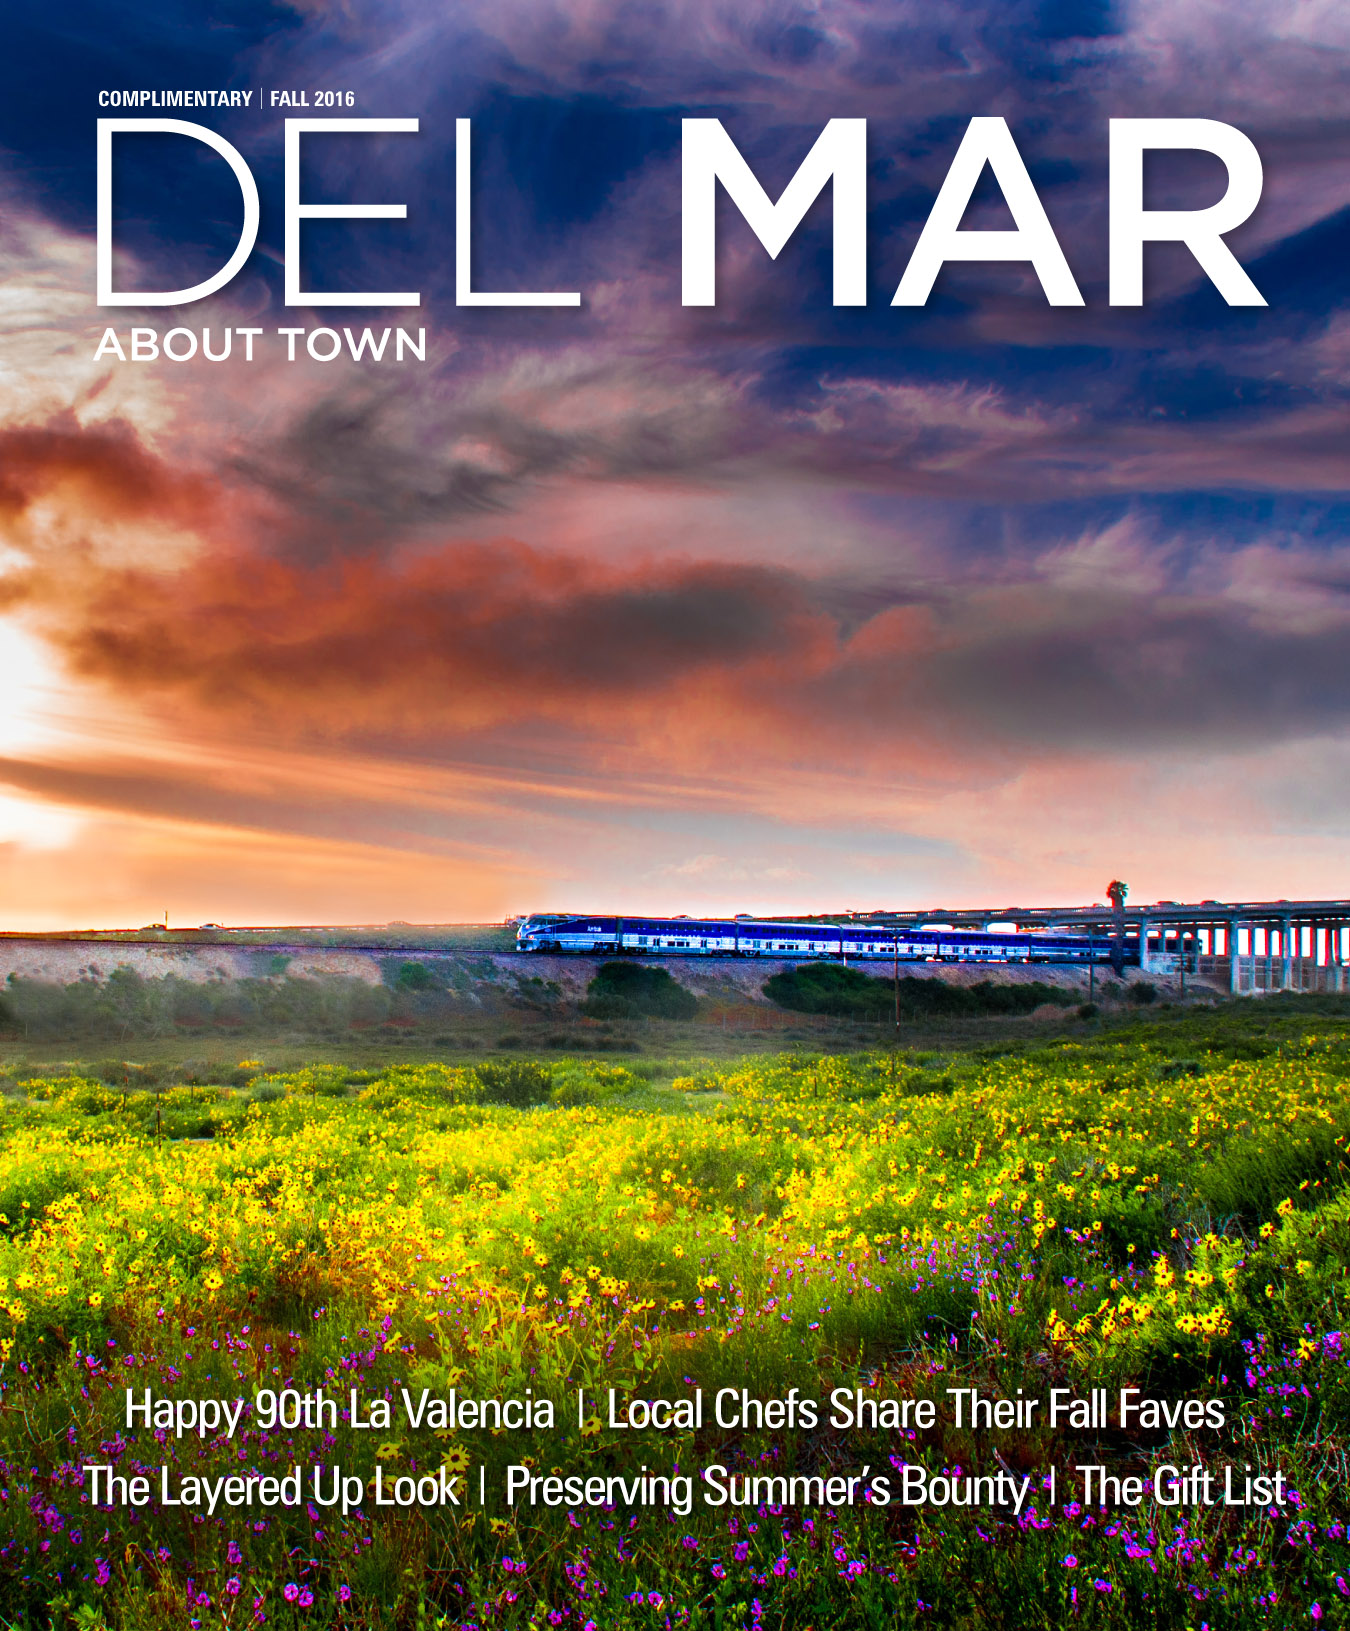 About Town Magazines - Del Mar